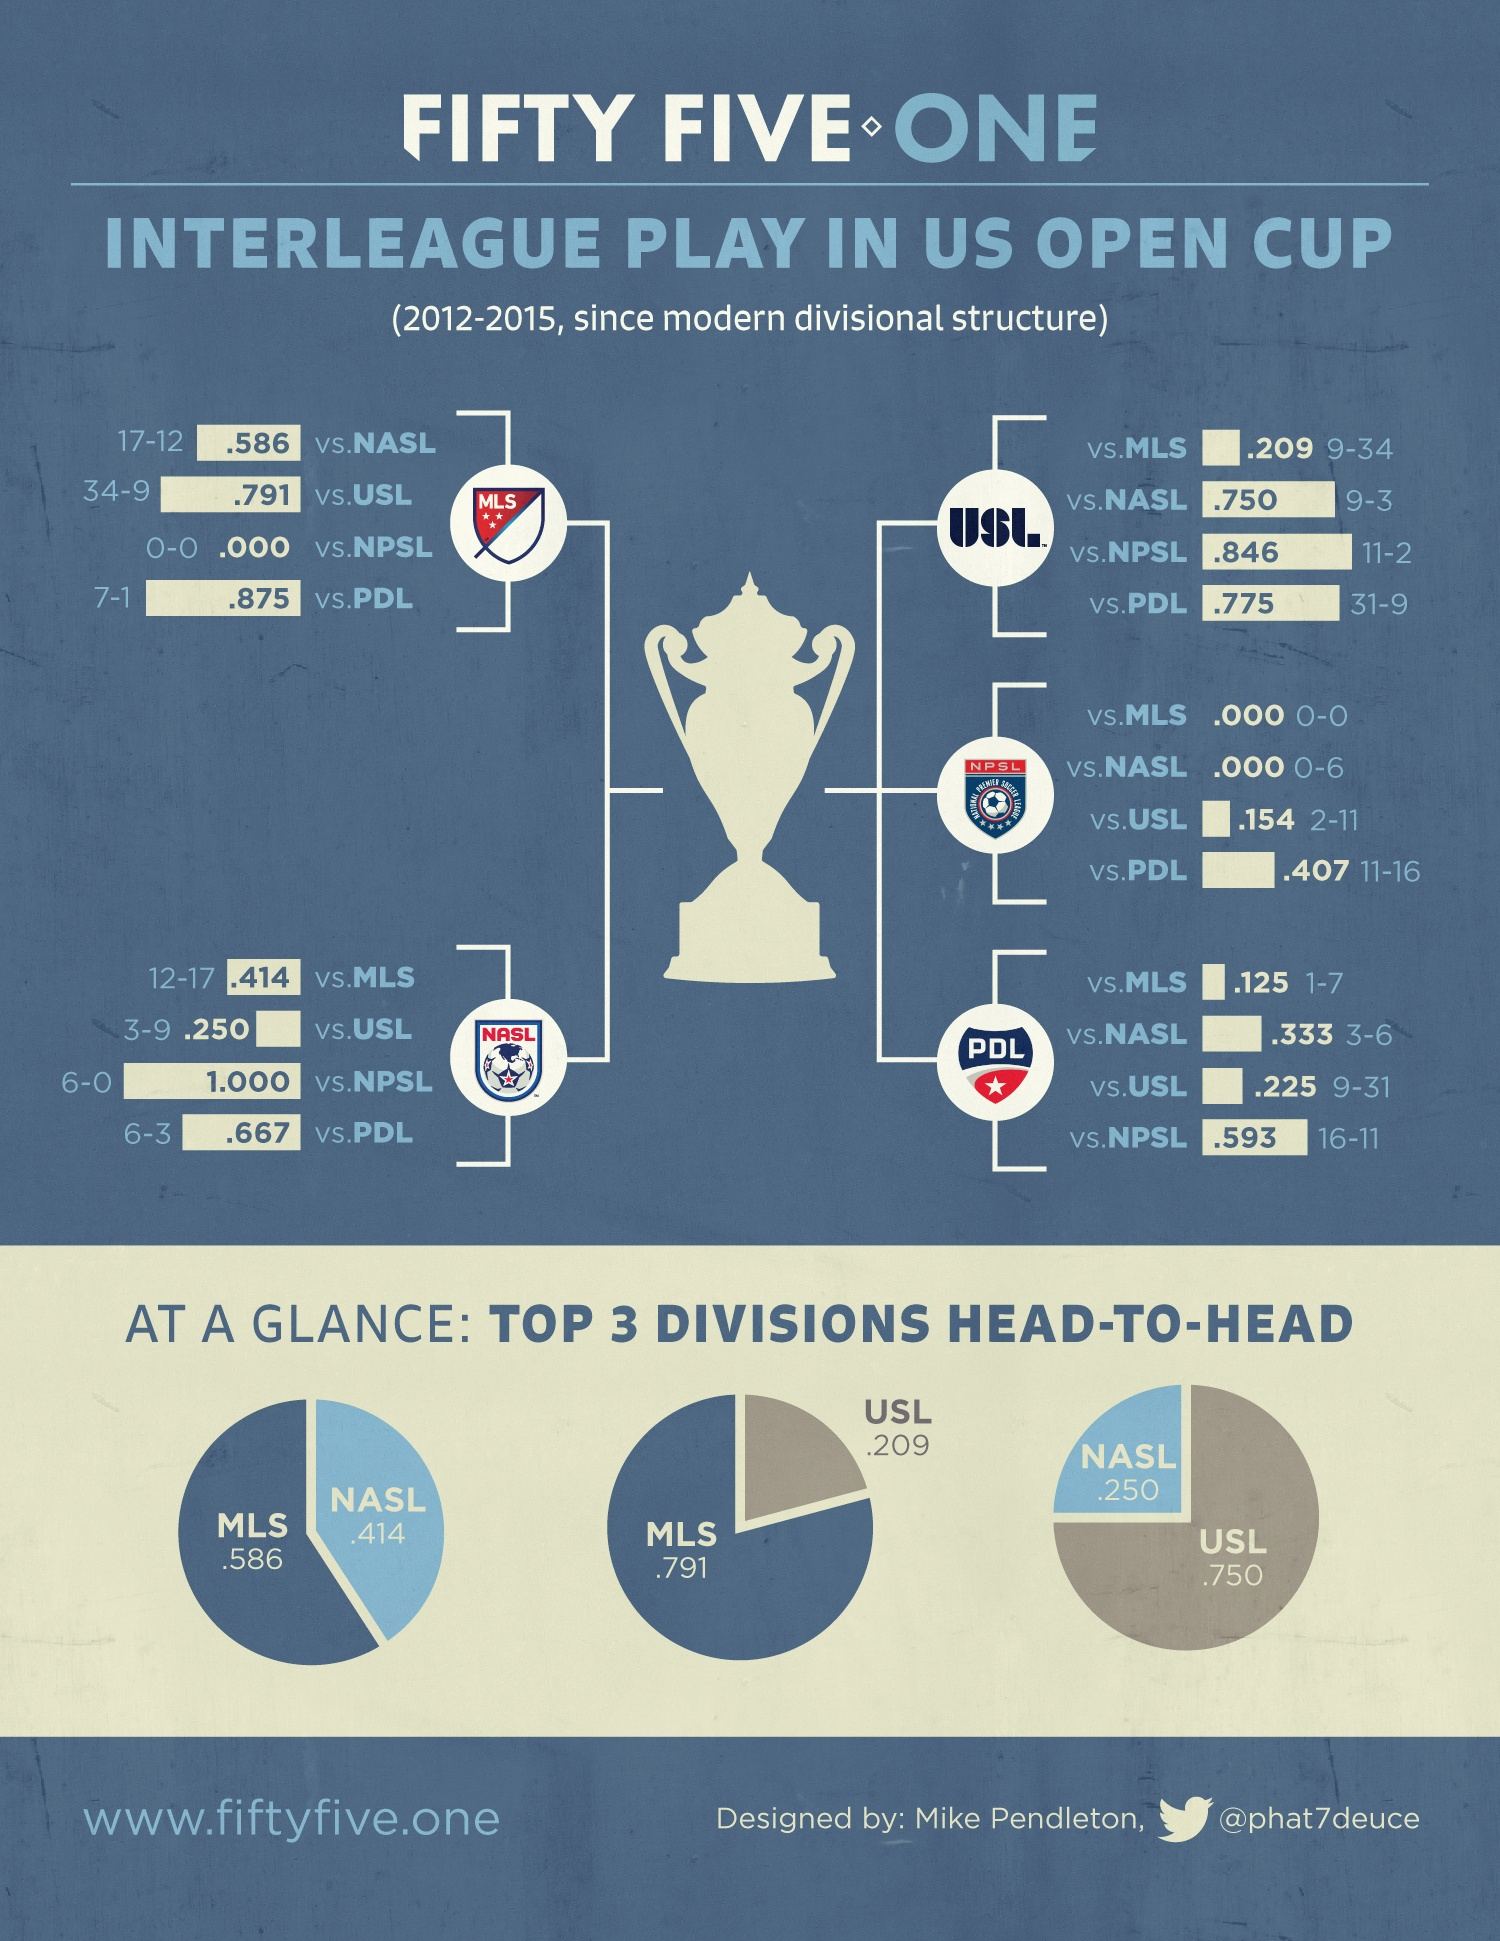 Infographic: Interleague Play in US Open Cup